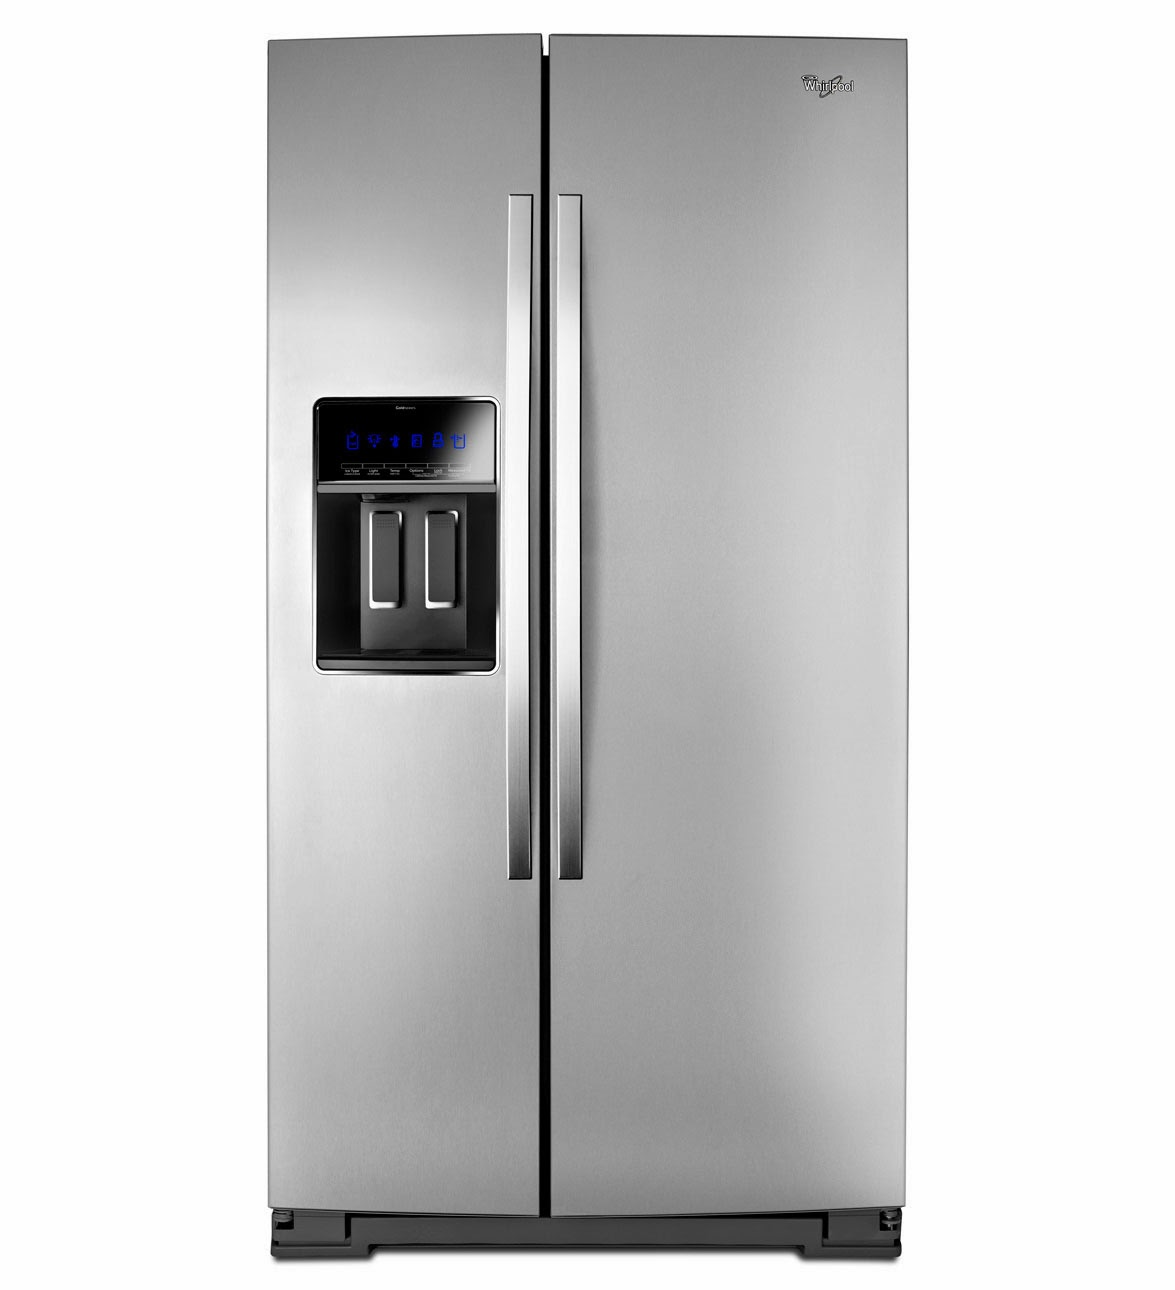 whirlpool refrigerator brand wrs965ciam side by side. Black Bedroom Furniture Sets. Home Design Ideas